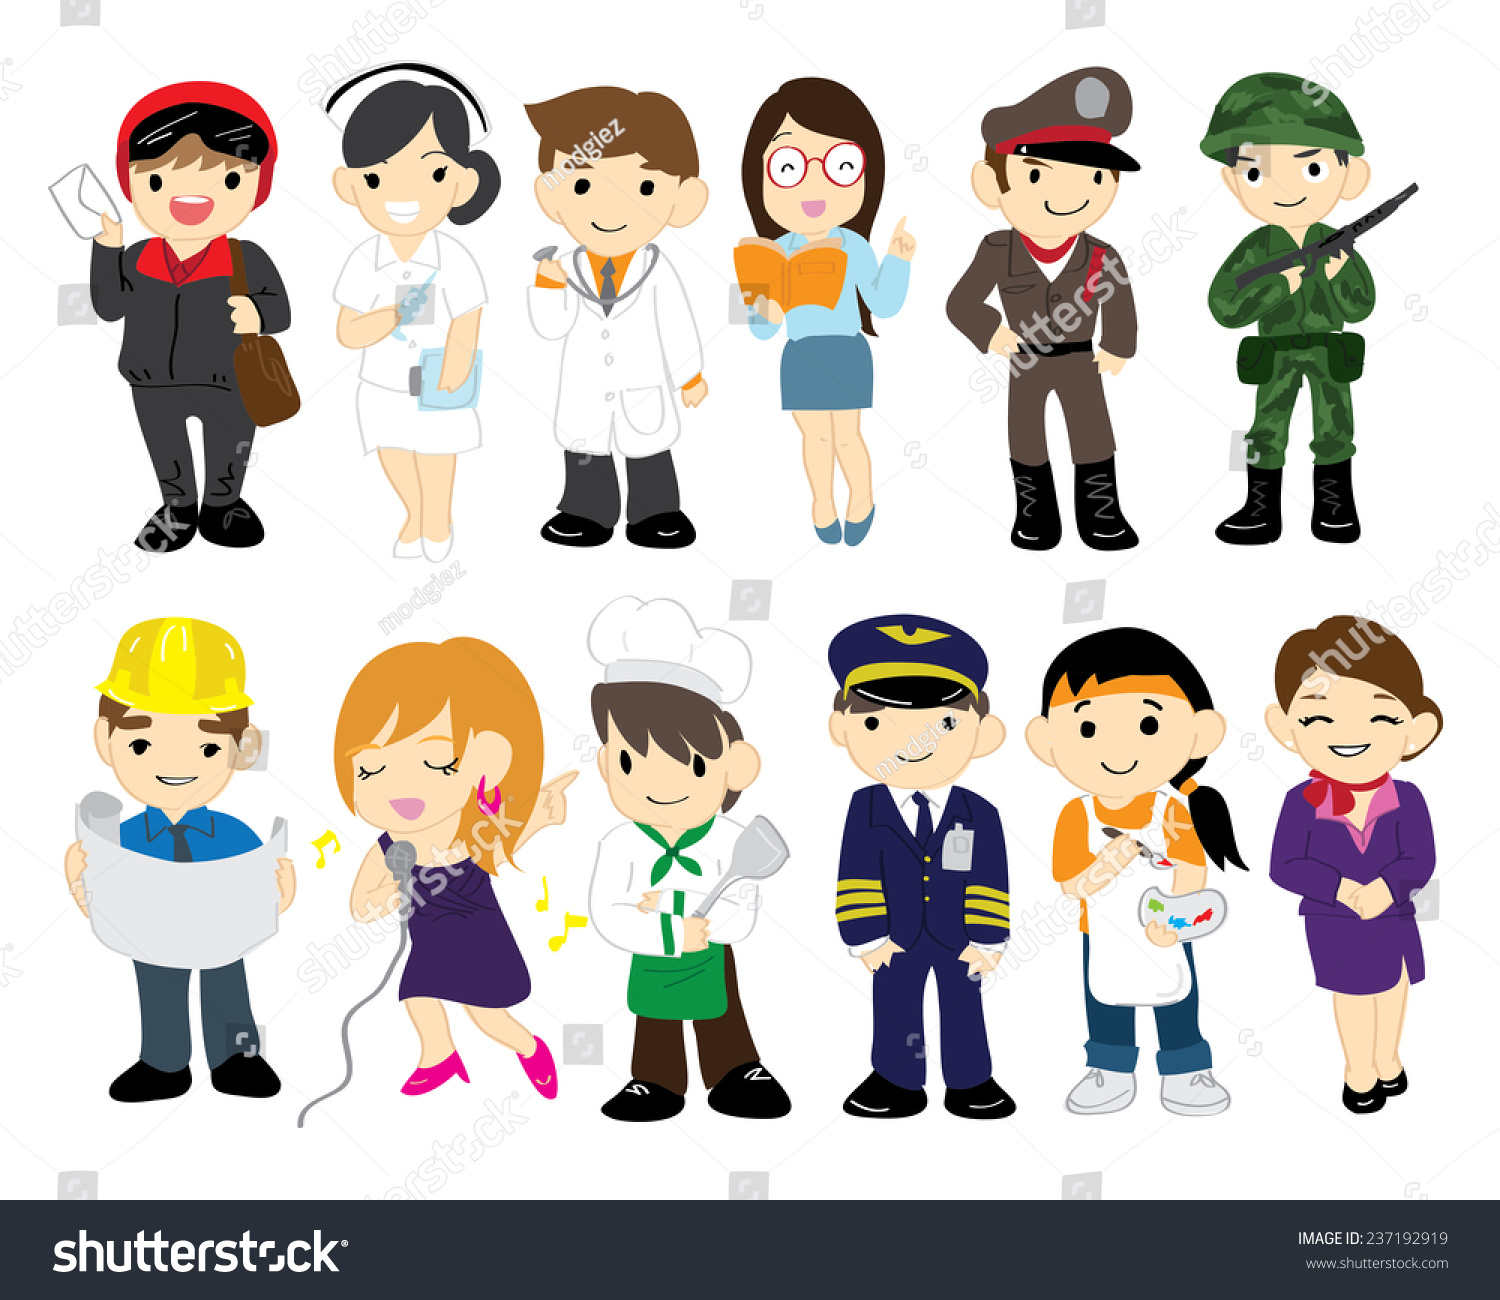 Careers clipart cute. Royalty free career stock